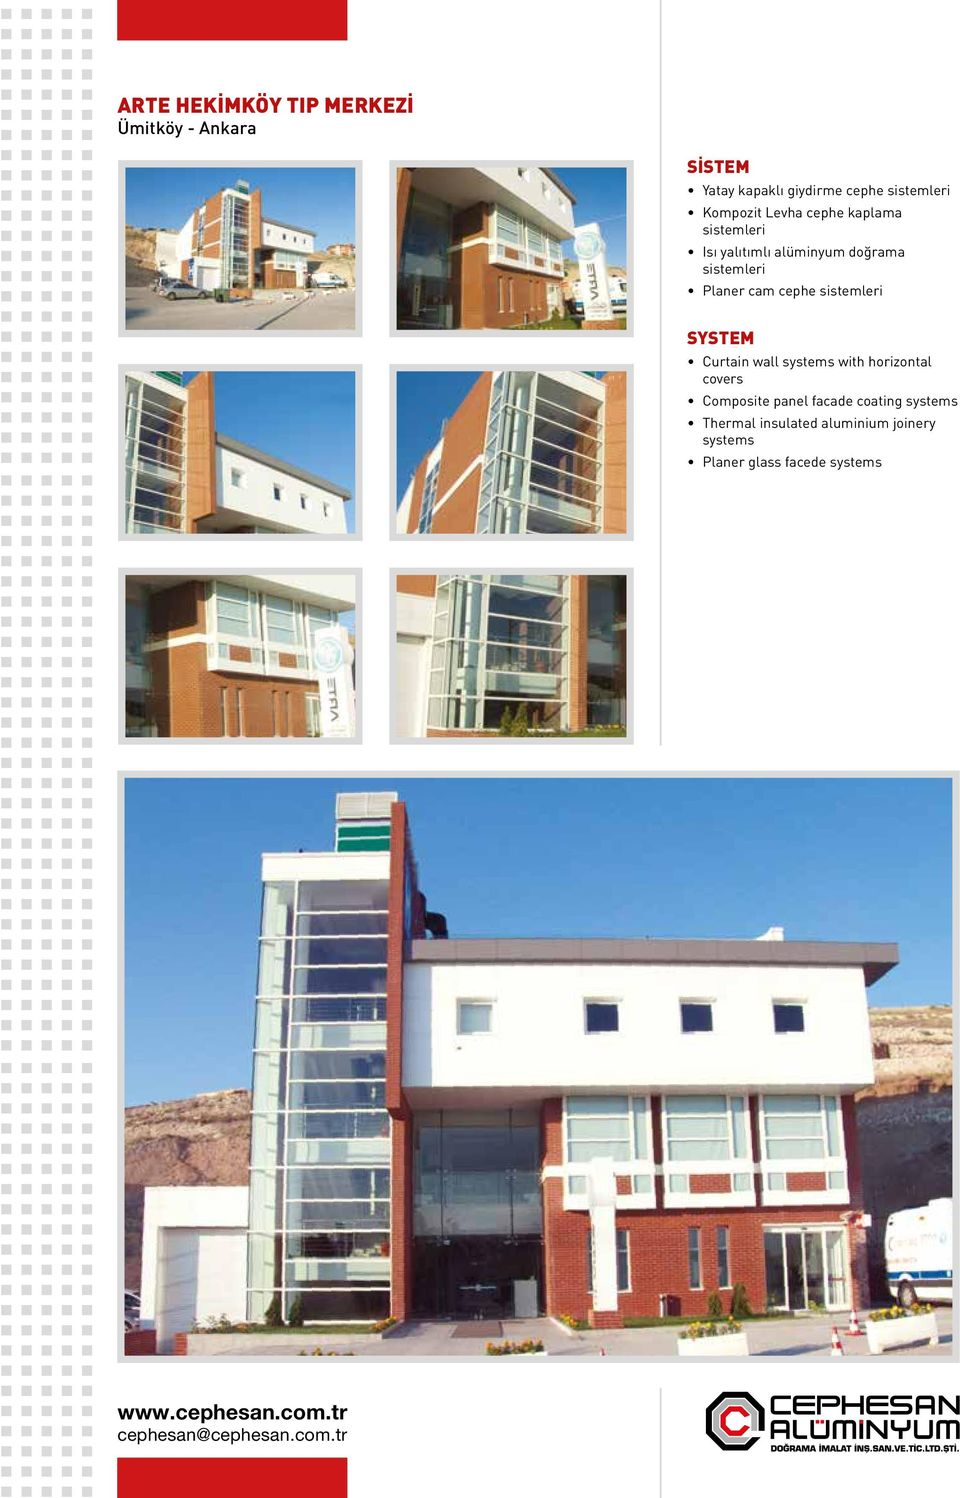 cephe Curtain wall systems with horizontal covers Composite panel facade